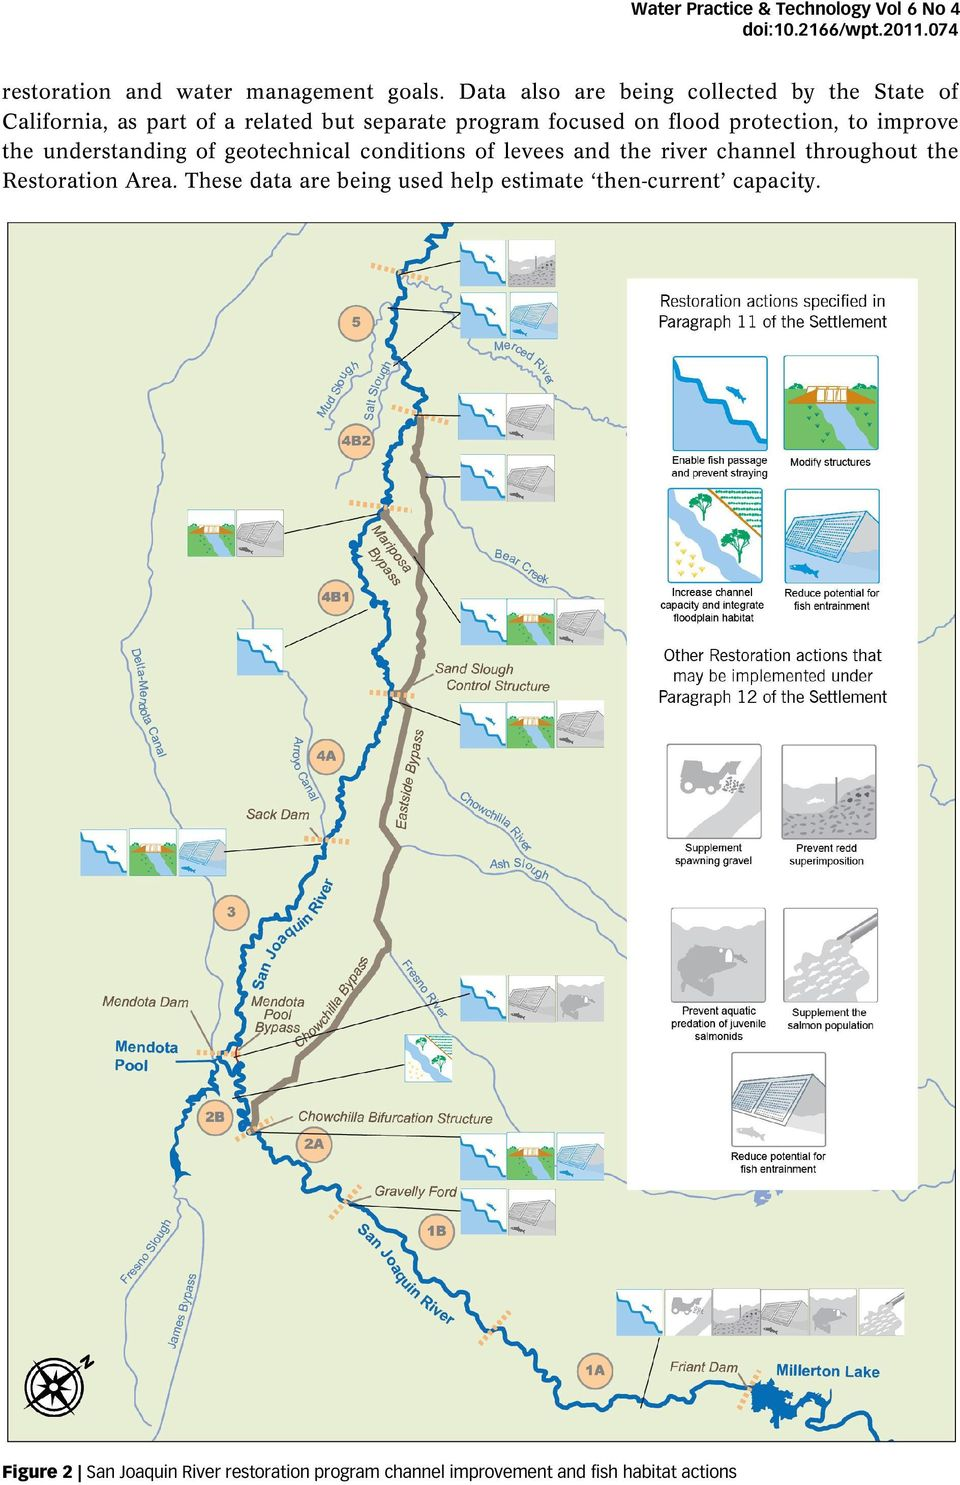 protection, to improve the understanding of geotechnical conditions of levees and the river channel throughout the Restoration